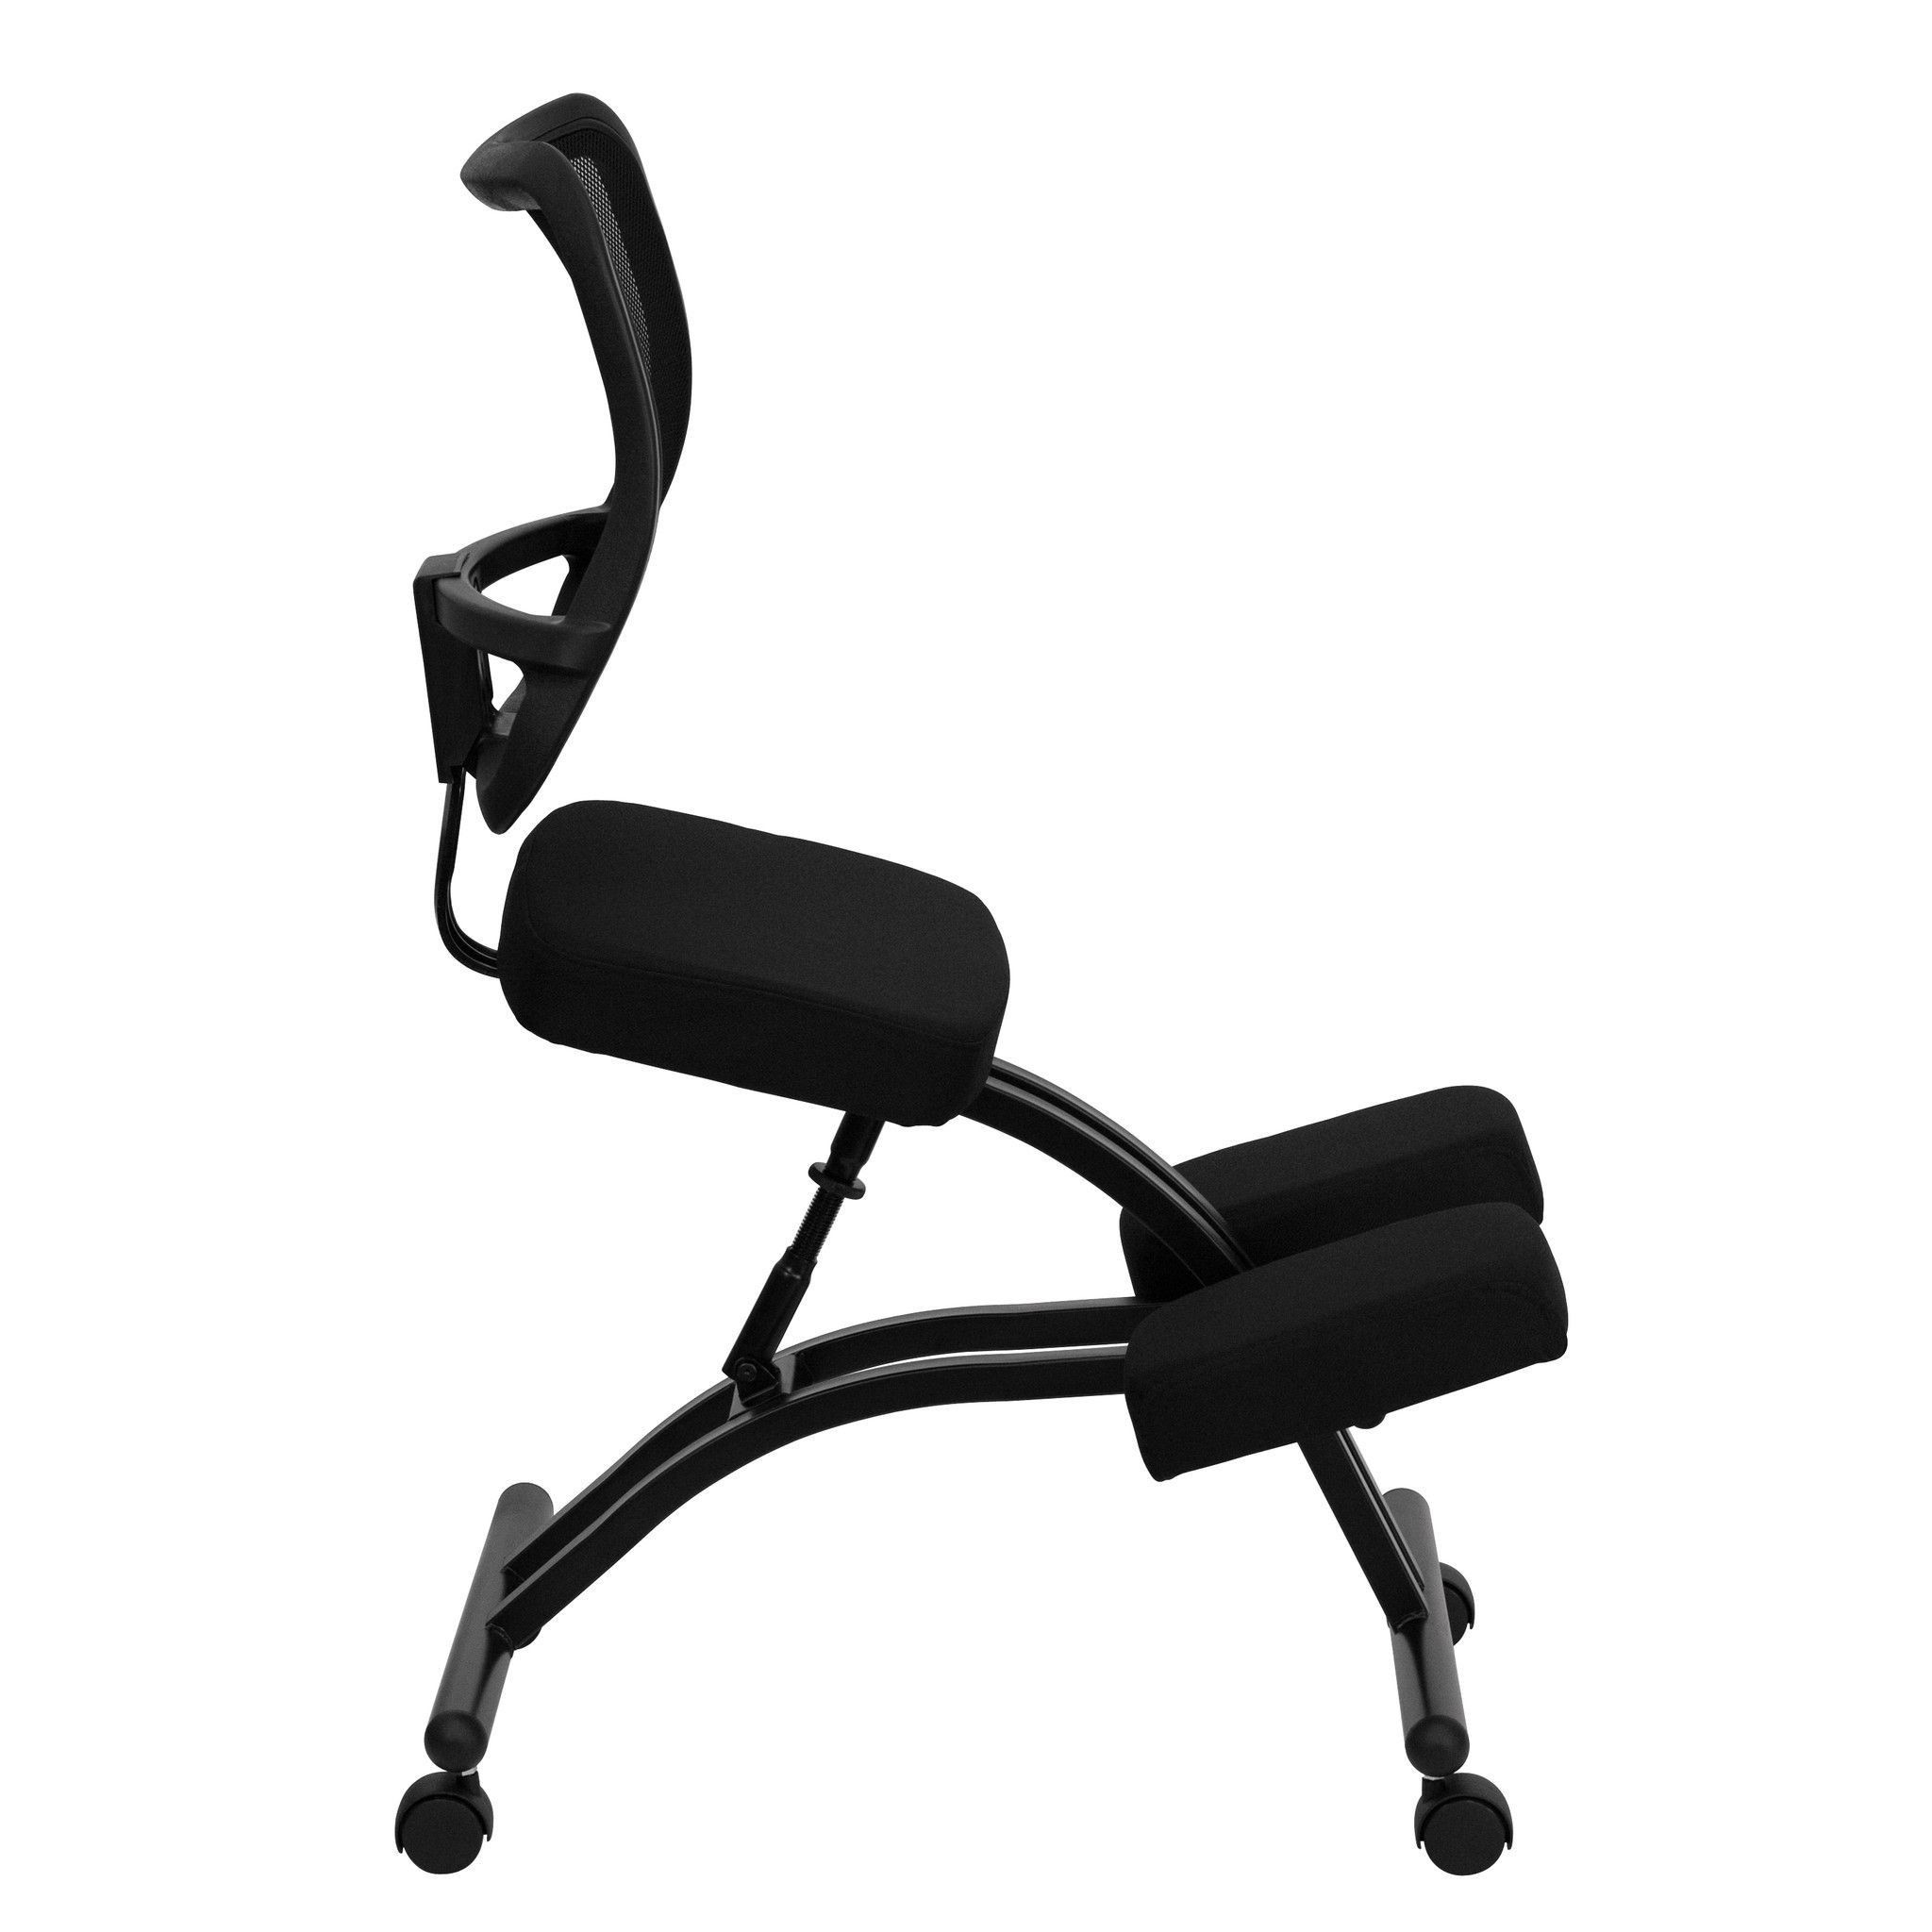 Backless ergonomic chair - Mobile Ergonomic Kneeling Chair With Black Curved Mesh Back